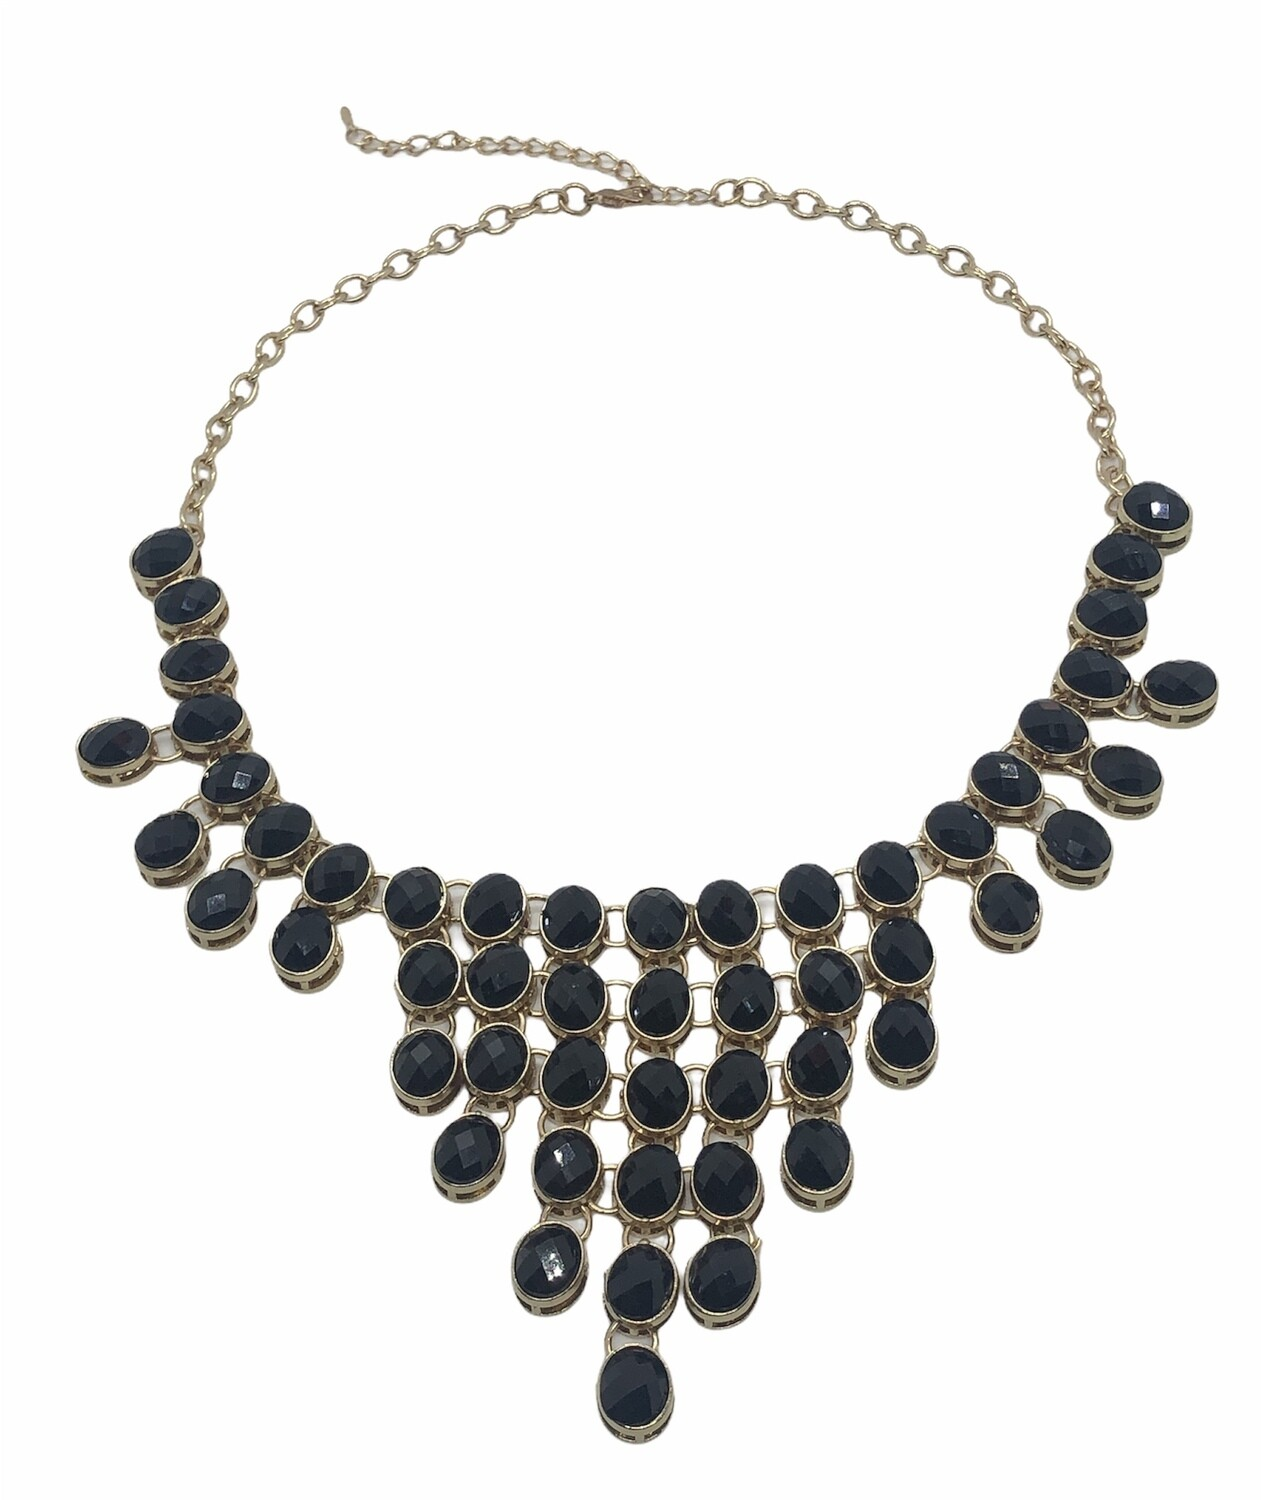 Black & Gold Chandelier Necklace